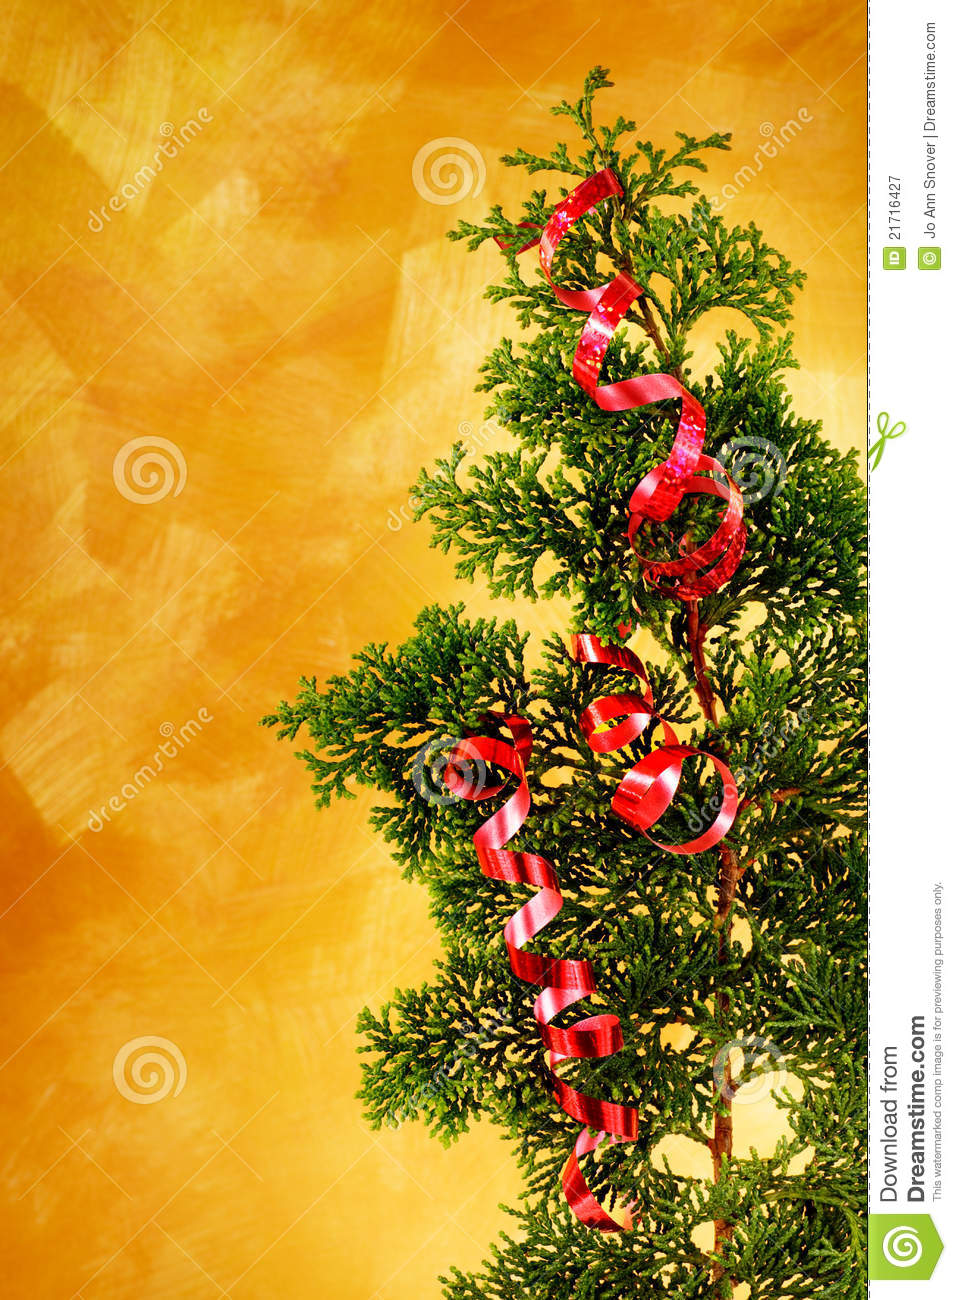 Christmas tree branch with red ribbon decoration royalty for Red ribbon around tree